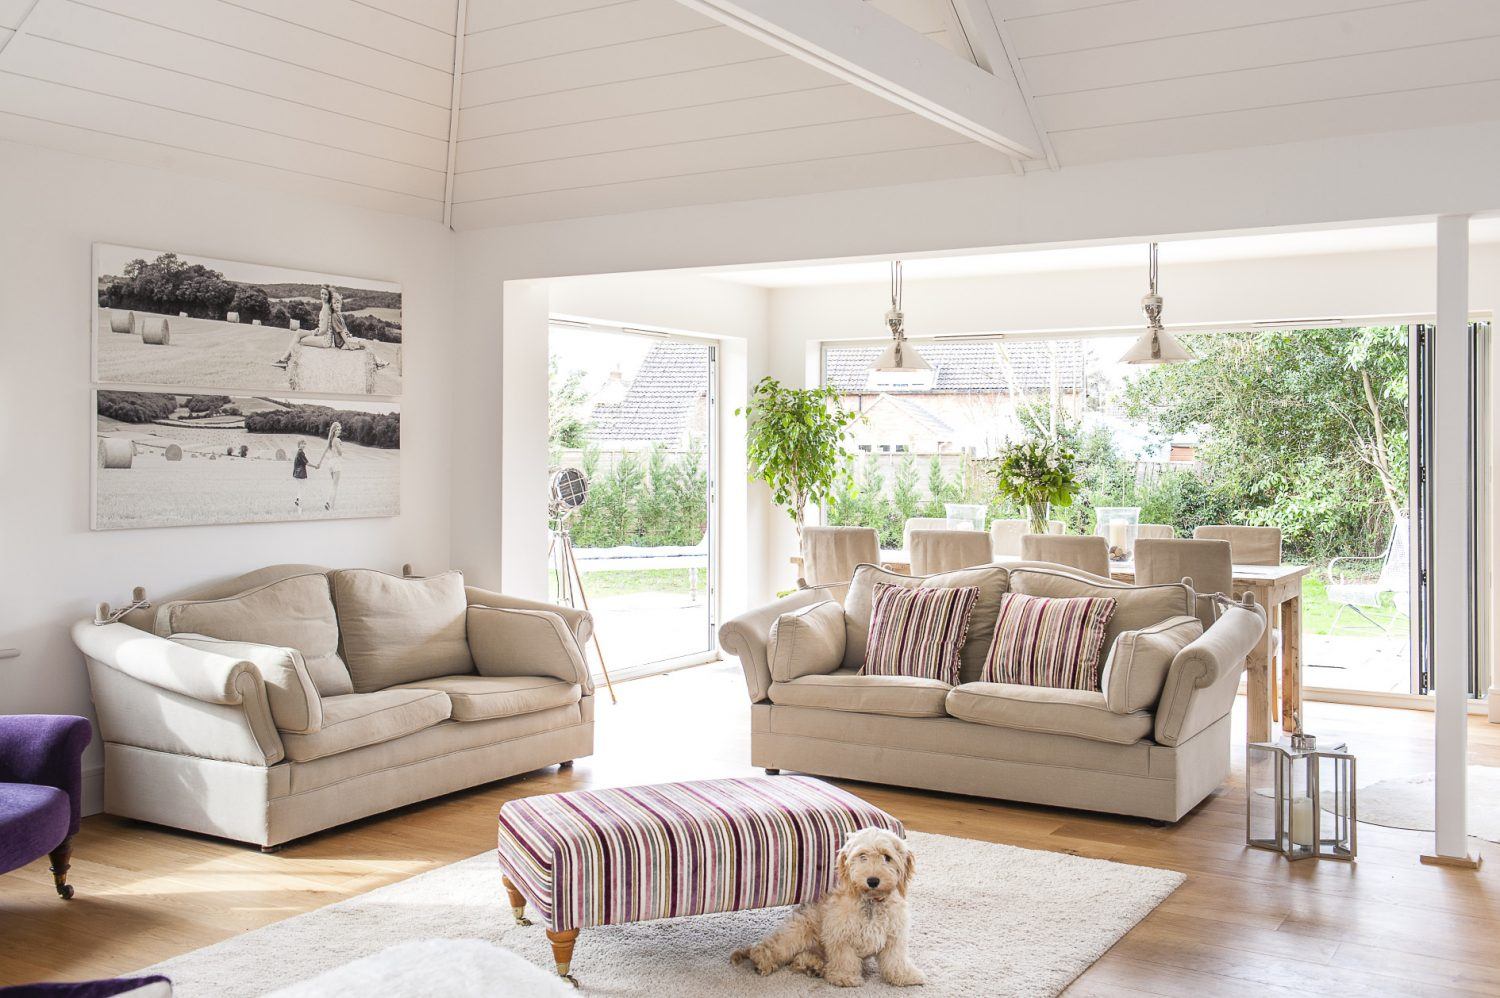 Ali finds decorating inspiration online through Houzz or Pinterest as well as from her childhood friend, Linda, who is a house builder and designer in Haut Bay in South Africa. She's certainly created a contemporary but homely feel, with pops of colour and photographic prints injecting interest and informality